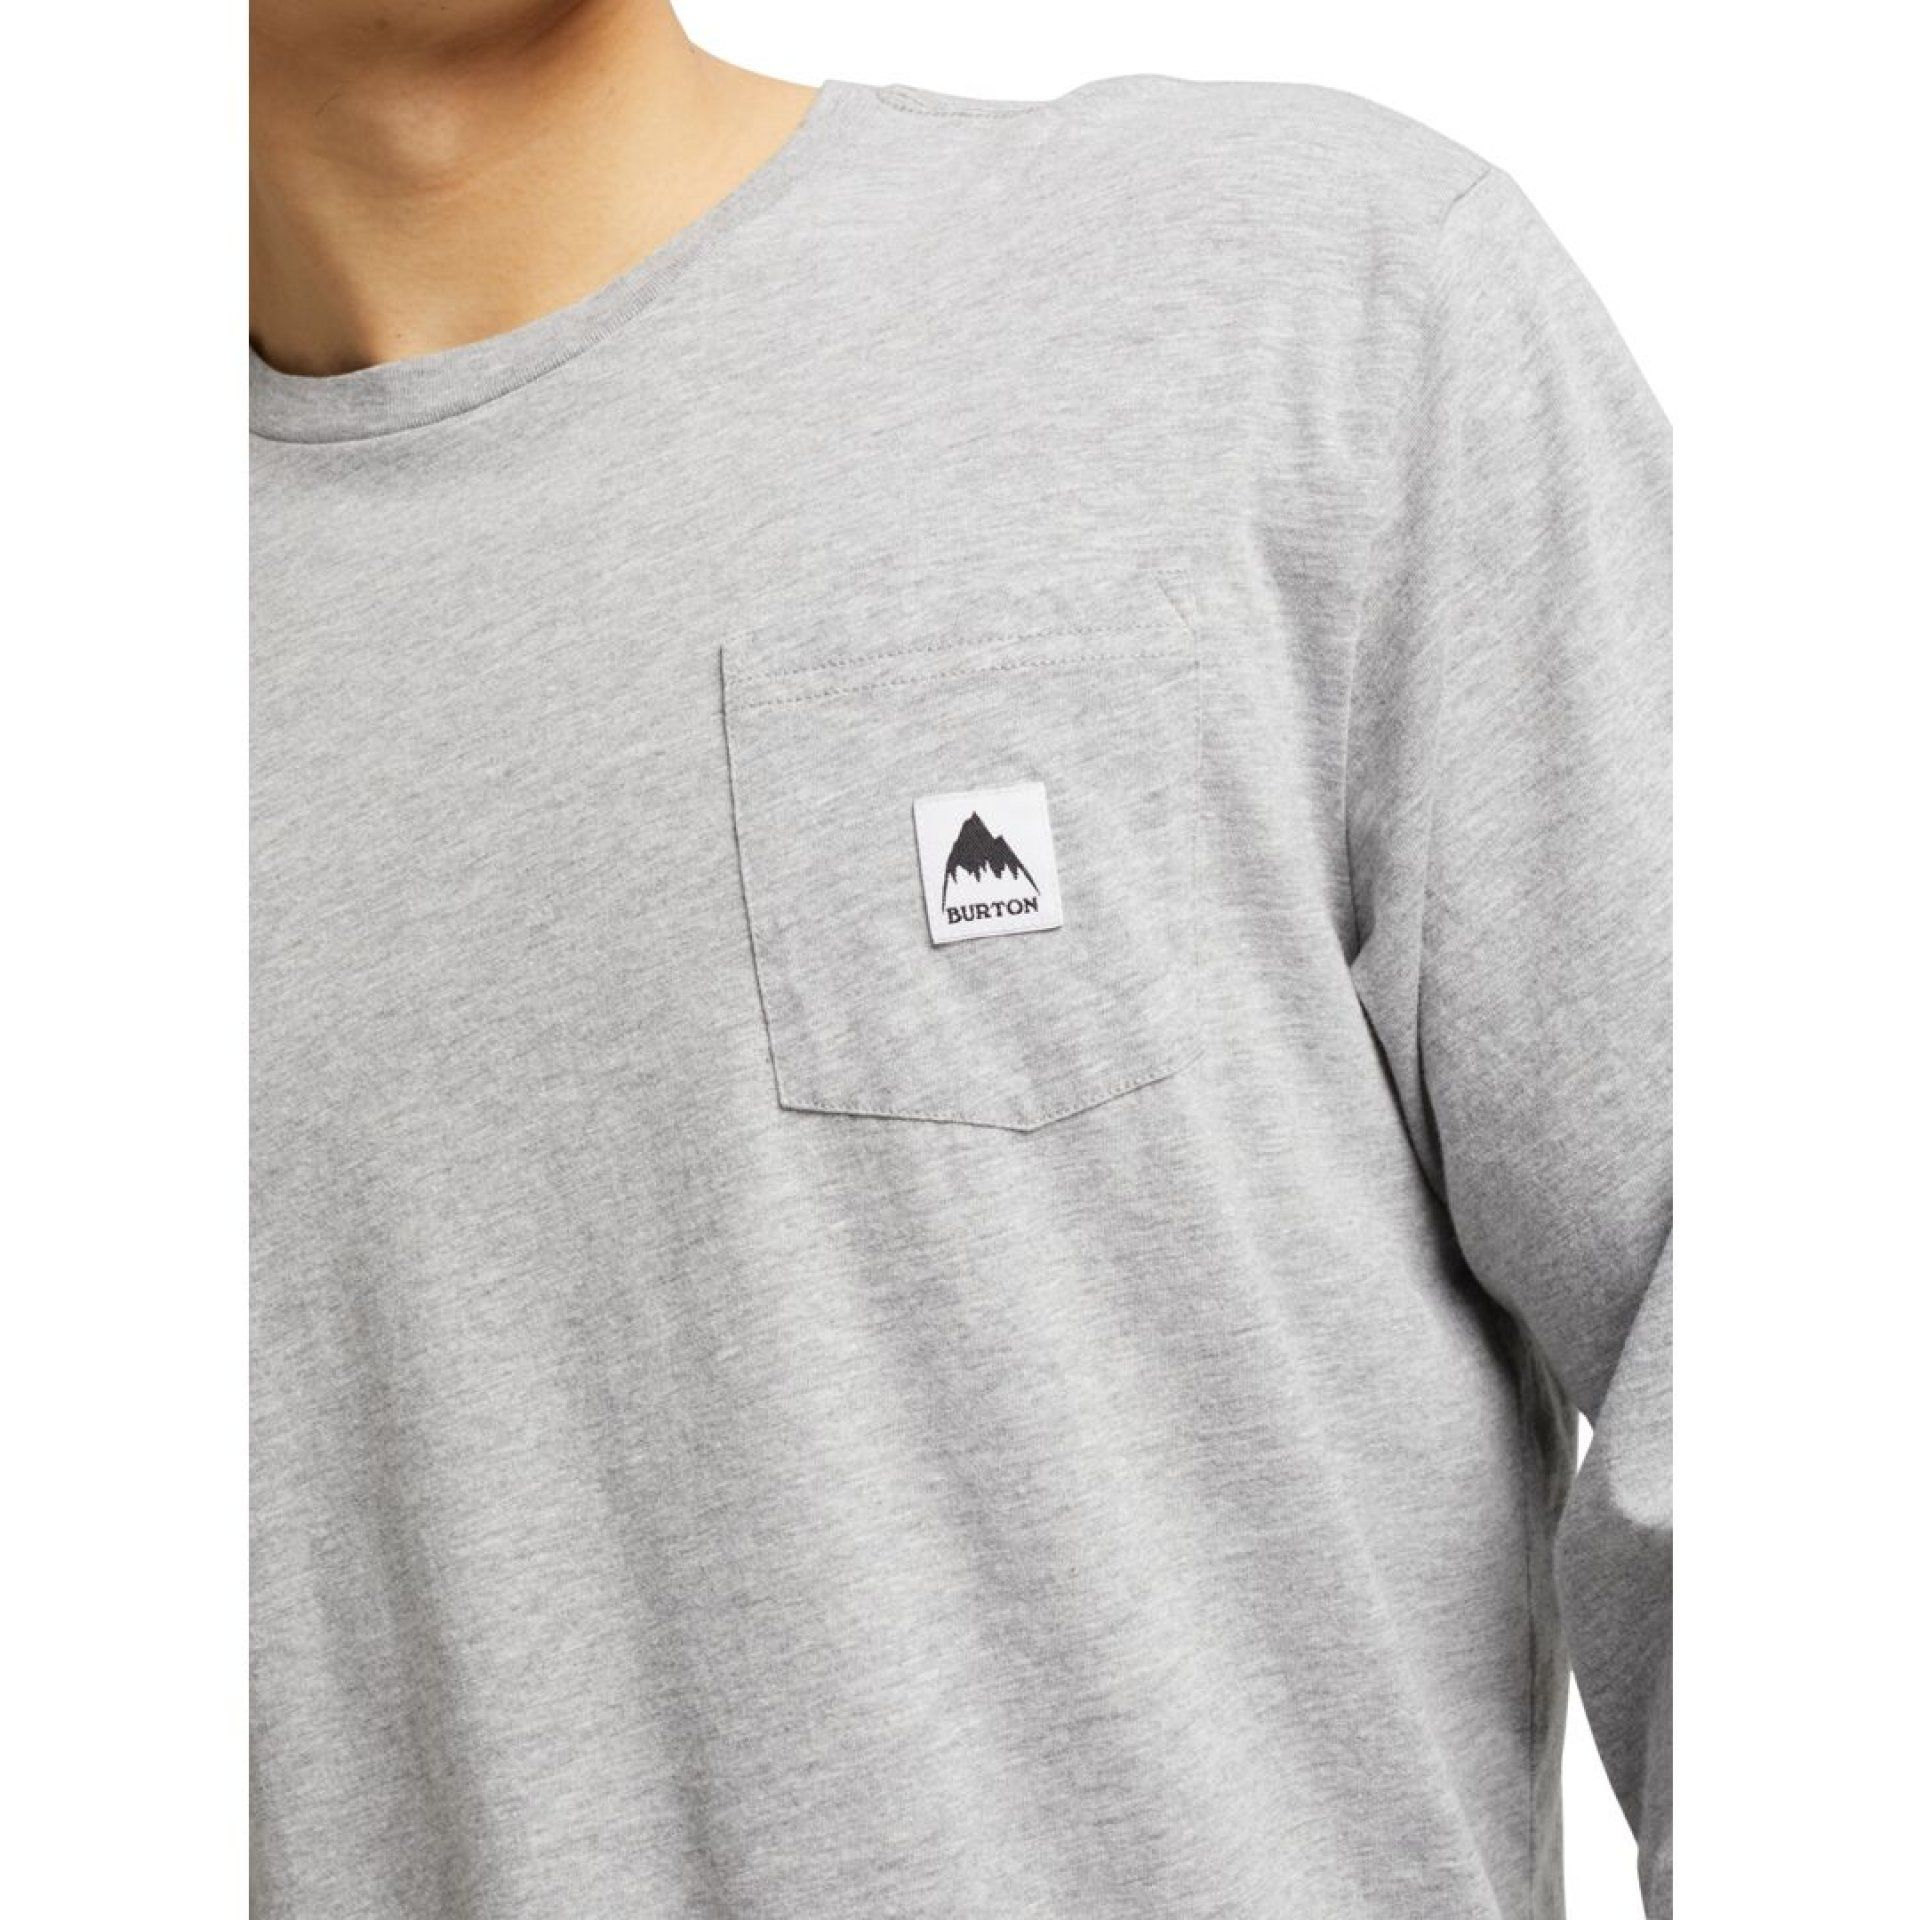 LONGSLEEVE BURTON COLFAX GRAY HEATHER DETALE